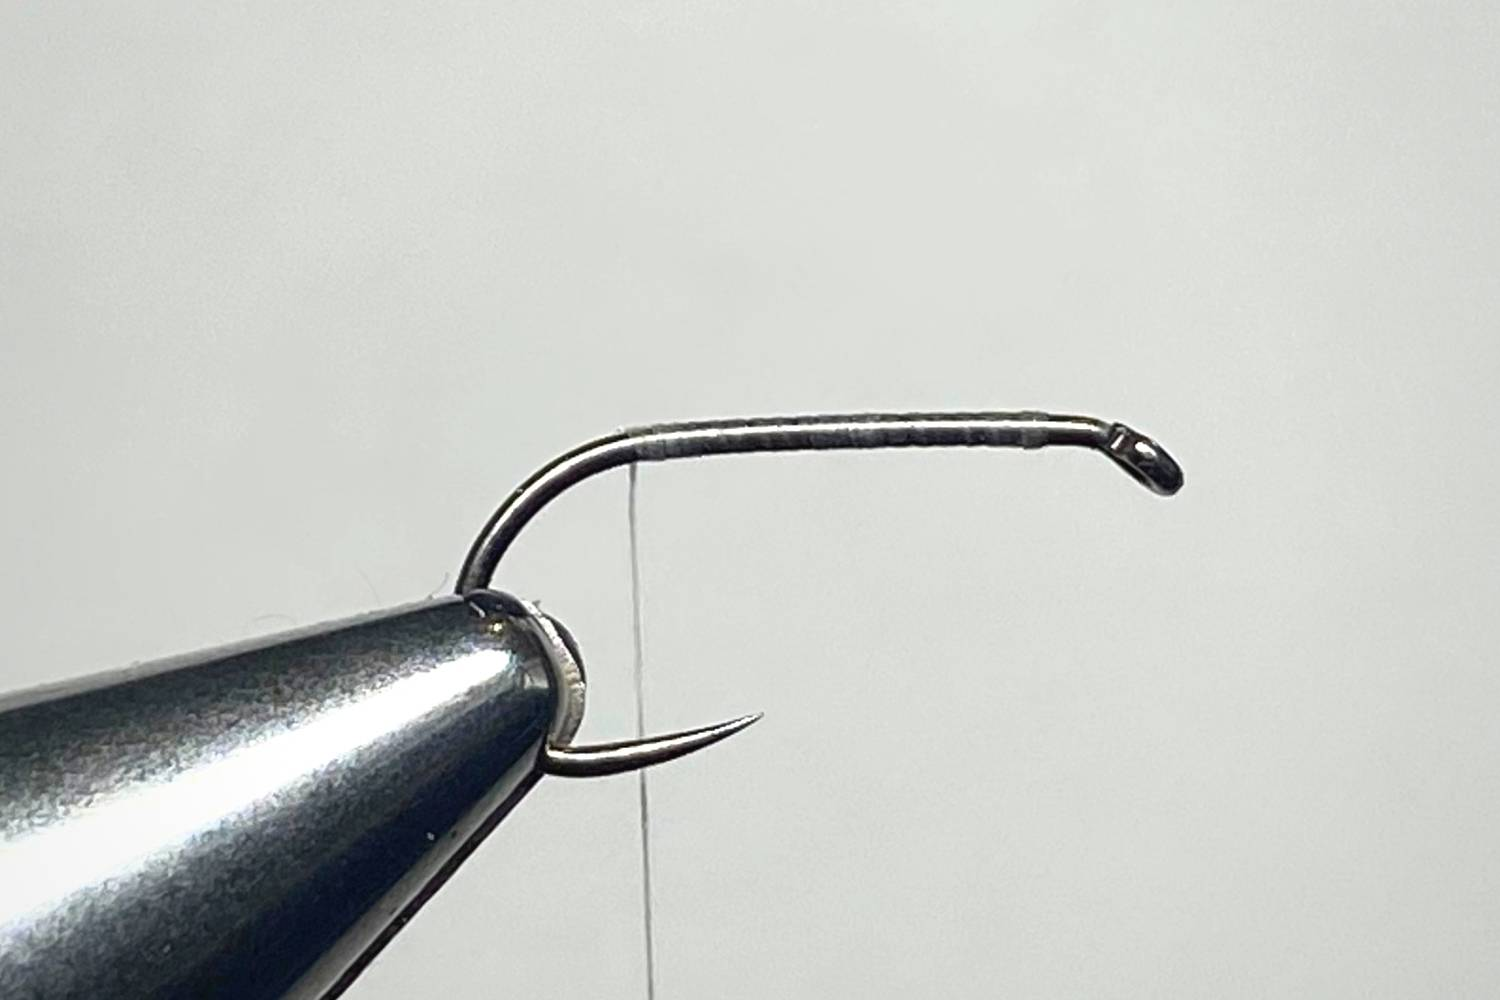 How to Tie a Pheasant Tail Nymph Fly step 2